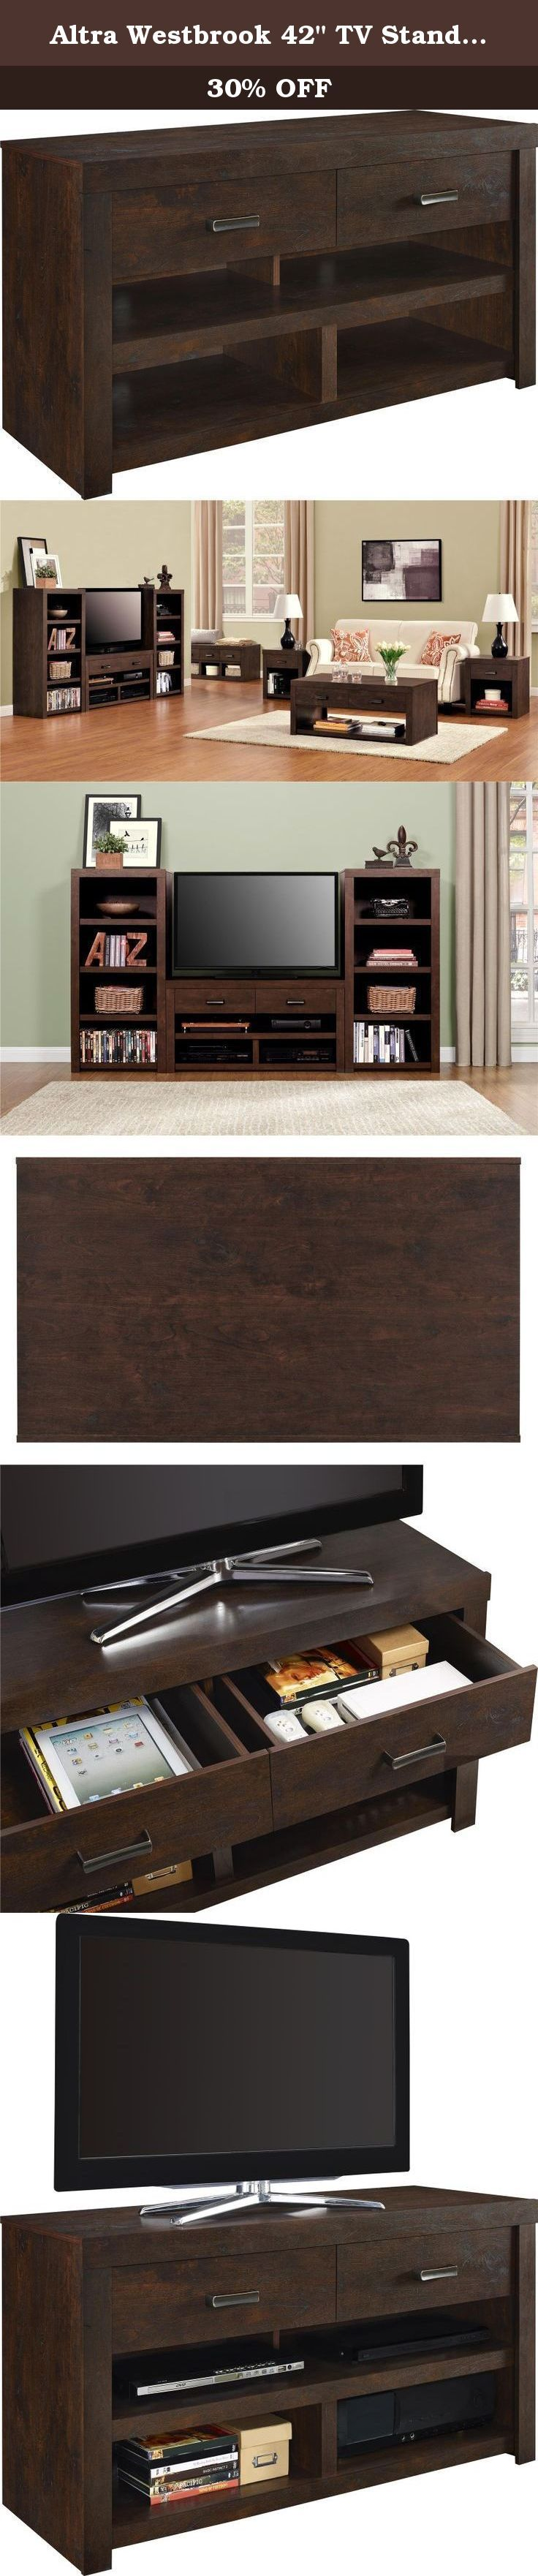 """Altra Westbrook 42"""" TV Stand, Dark Walnut. Designed with a Dark Walnut finish and Antique Bronze hardware, the Altra Westbrook 42"""" TV Stand is an elegant addition to your living room. This beautiful TV stand accommodates up to a 42"""" flat screen TV. The 4 open shelves are designed to hold your DVD player, cable box, sound bar or gaming console. Use the 2 drawers to organize DVDs and video games. Westbrook 42"""" TV Stand requires assembly upon delivery."""